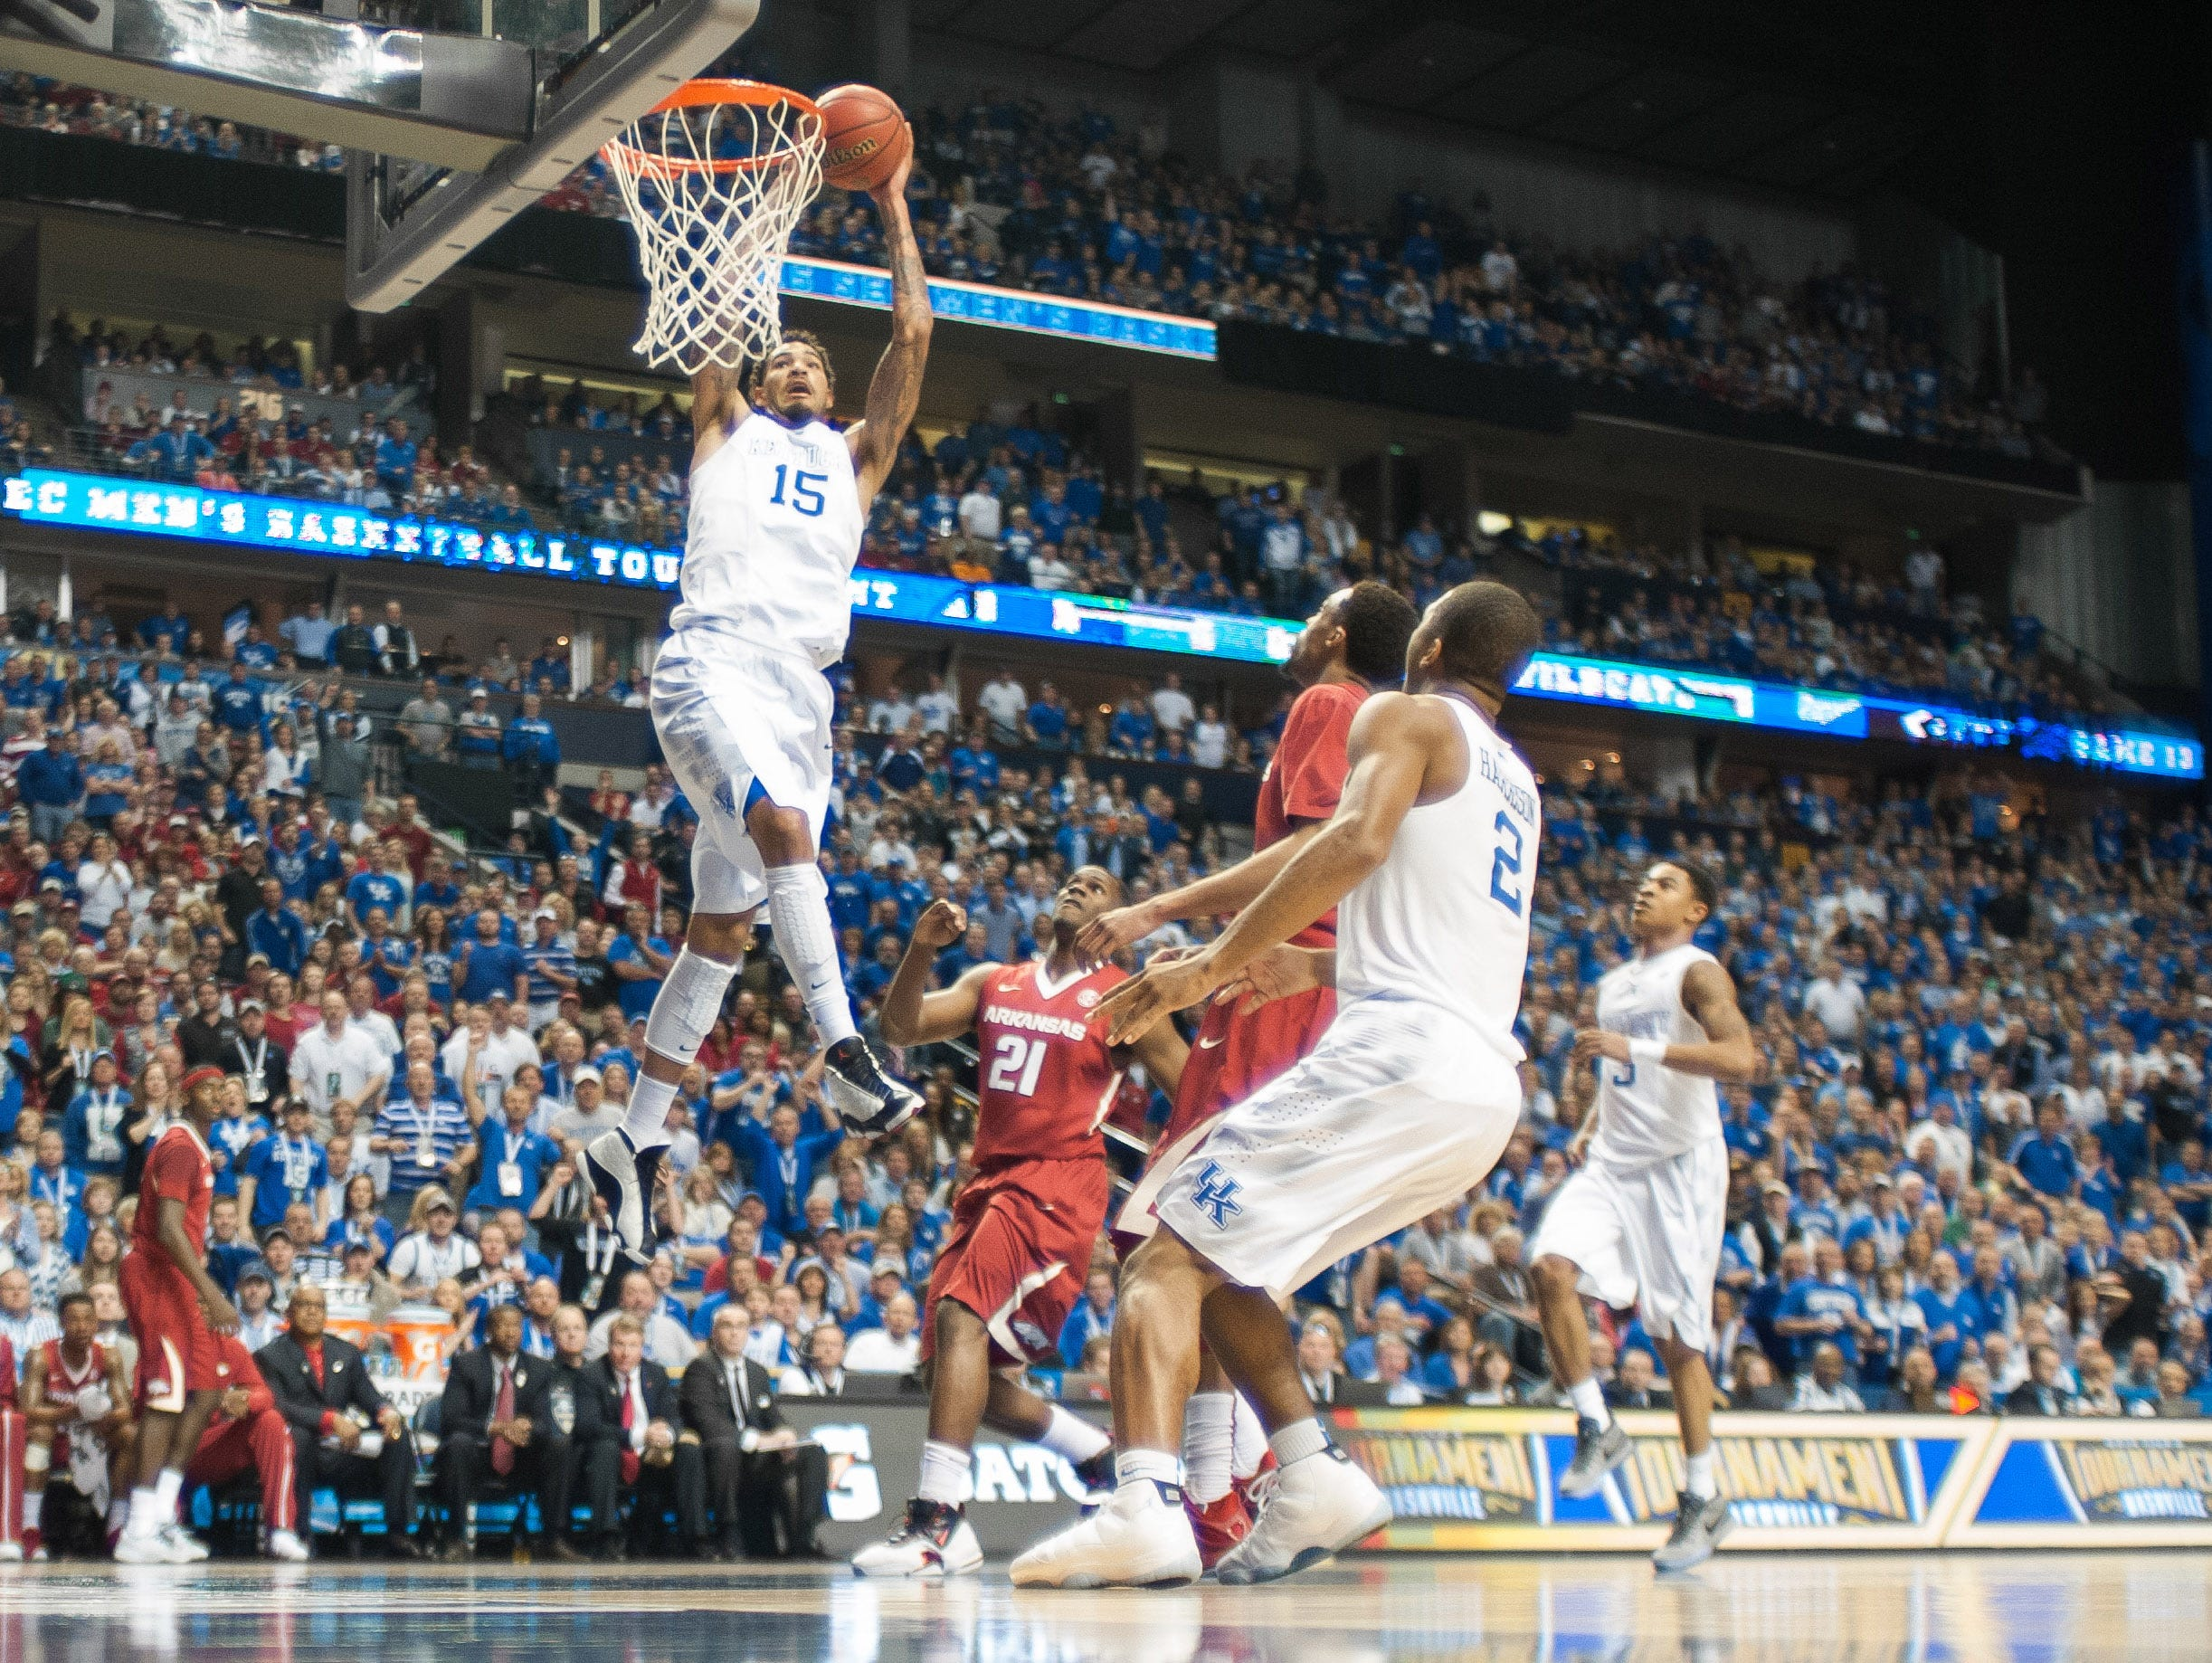 Kentucky Wildcats forward Willie Cauley-Stein (15) dunks the ball during the first half of the SEC Conference championship game at Bridgestone Arena. Kentucky Wildcats defeated Arkansas Razorbacks 78-63.